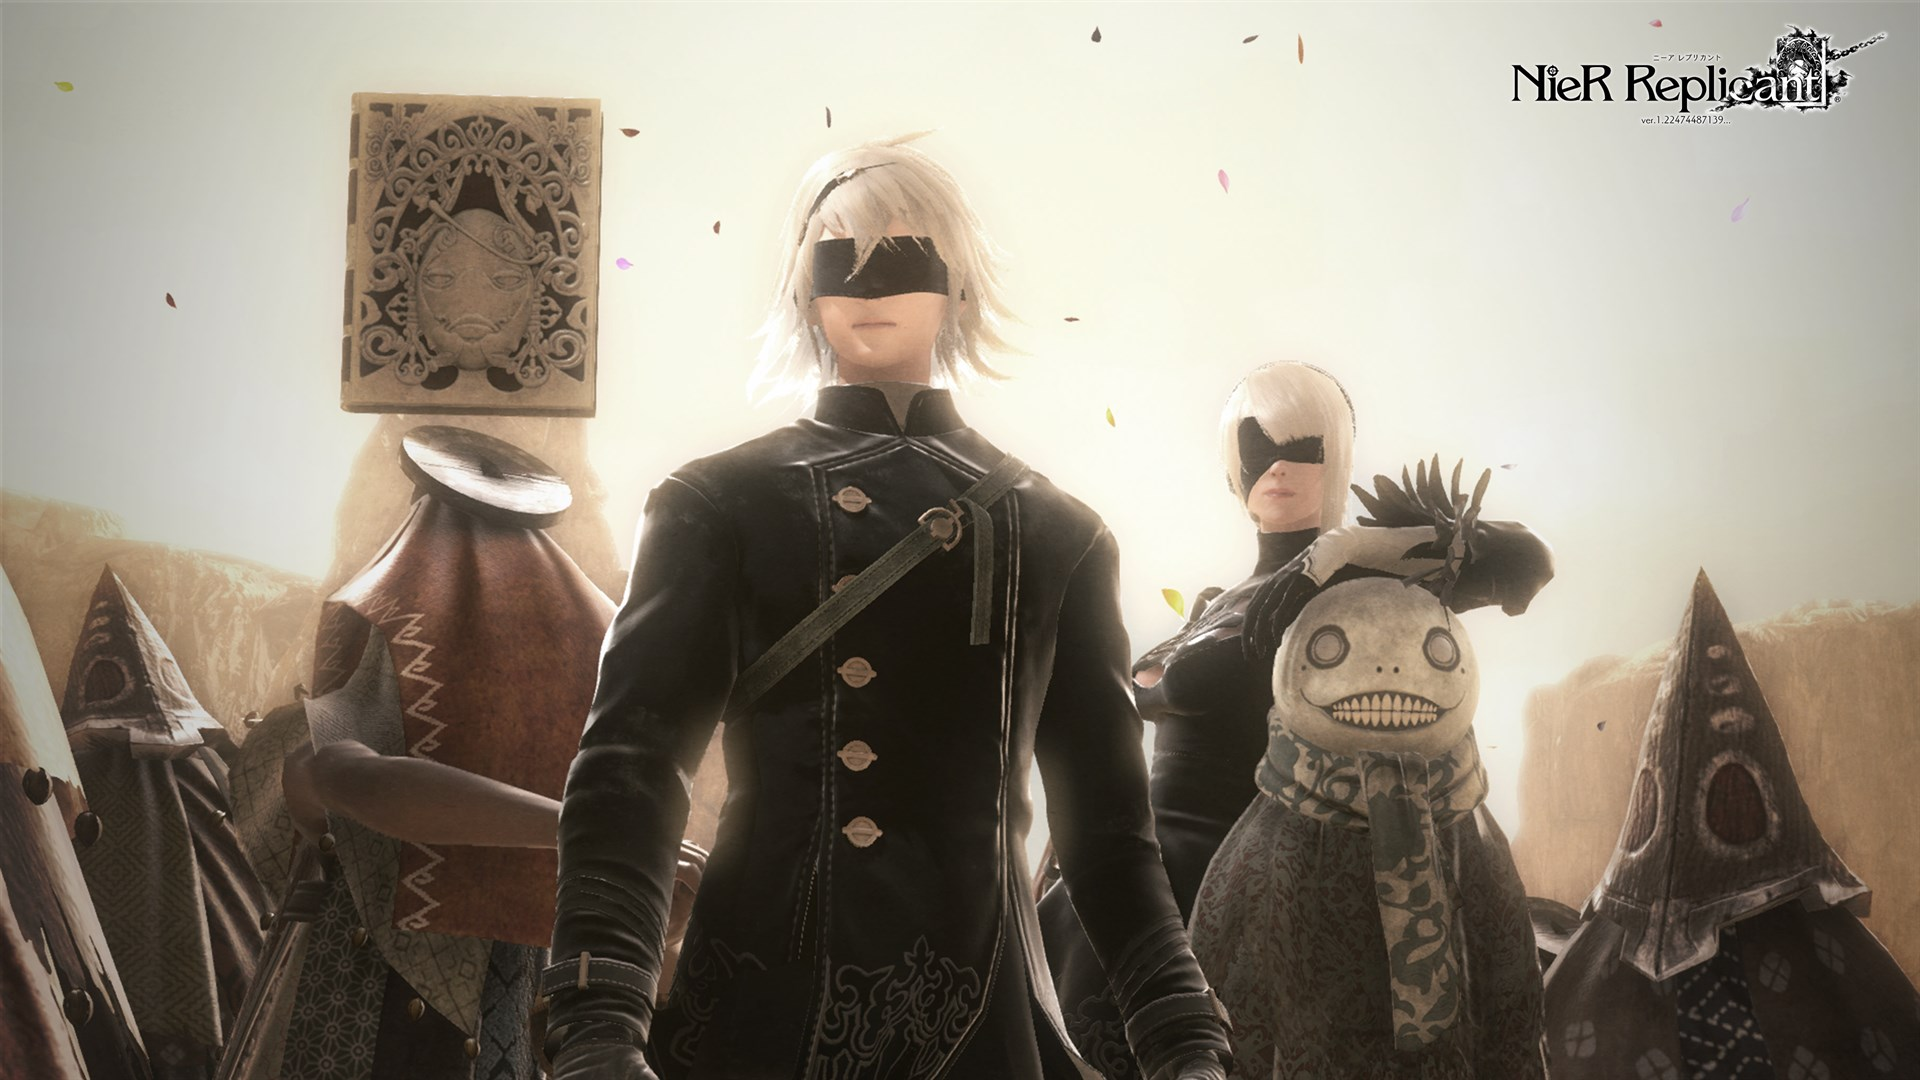 Advantages and Disadvantages of Increased FPS in NieR Replicant